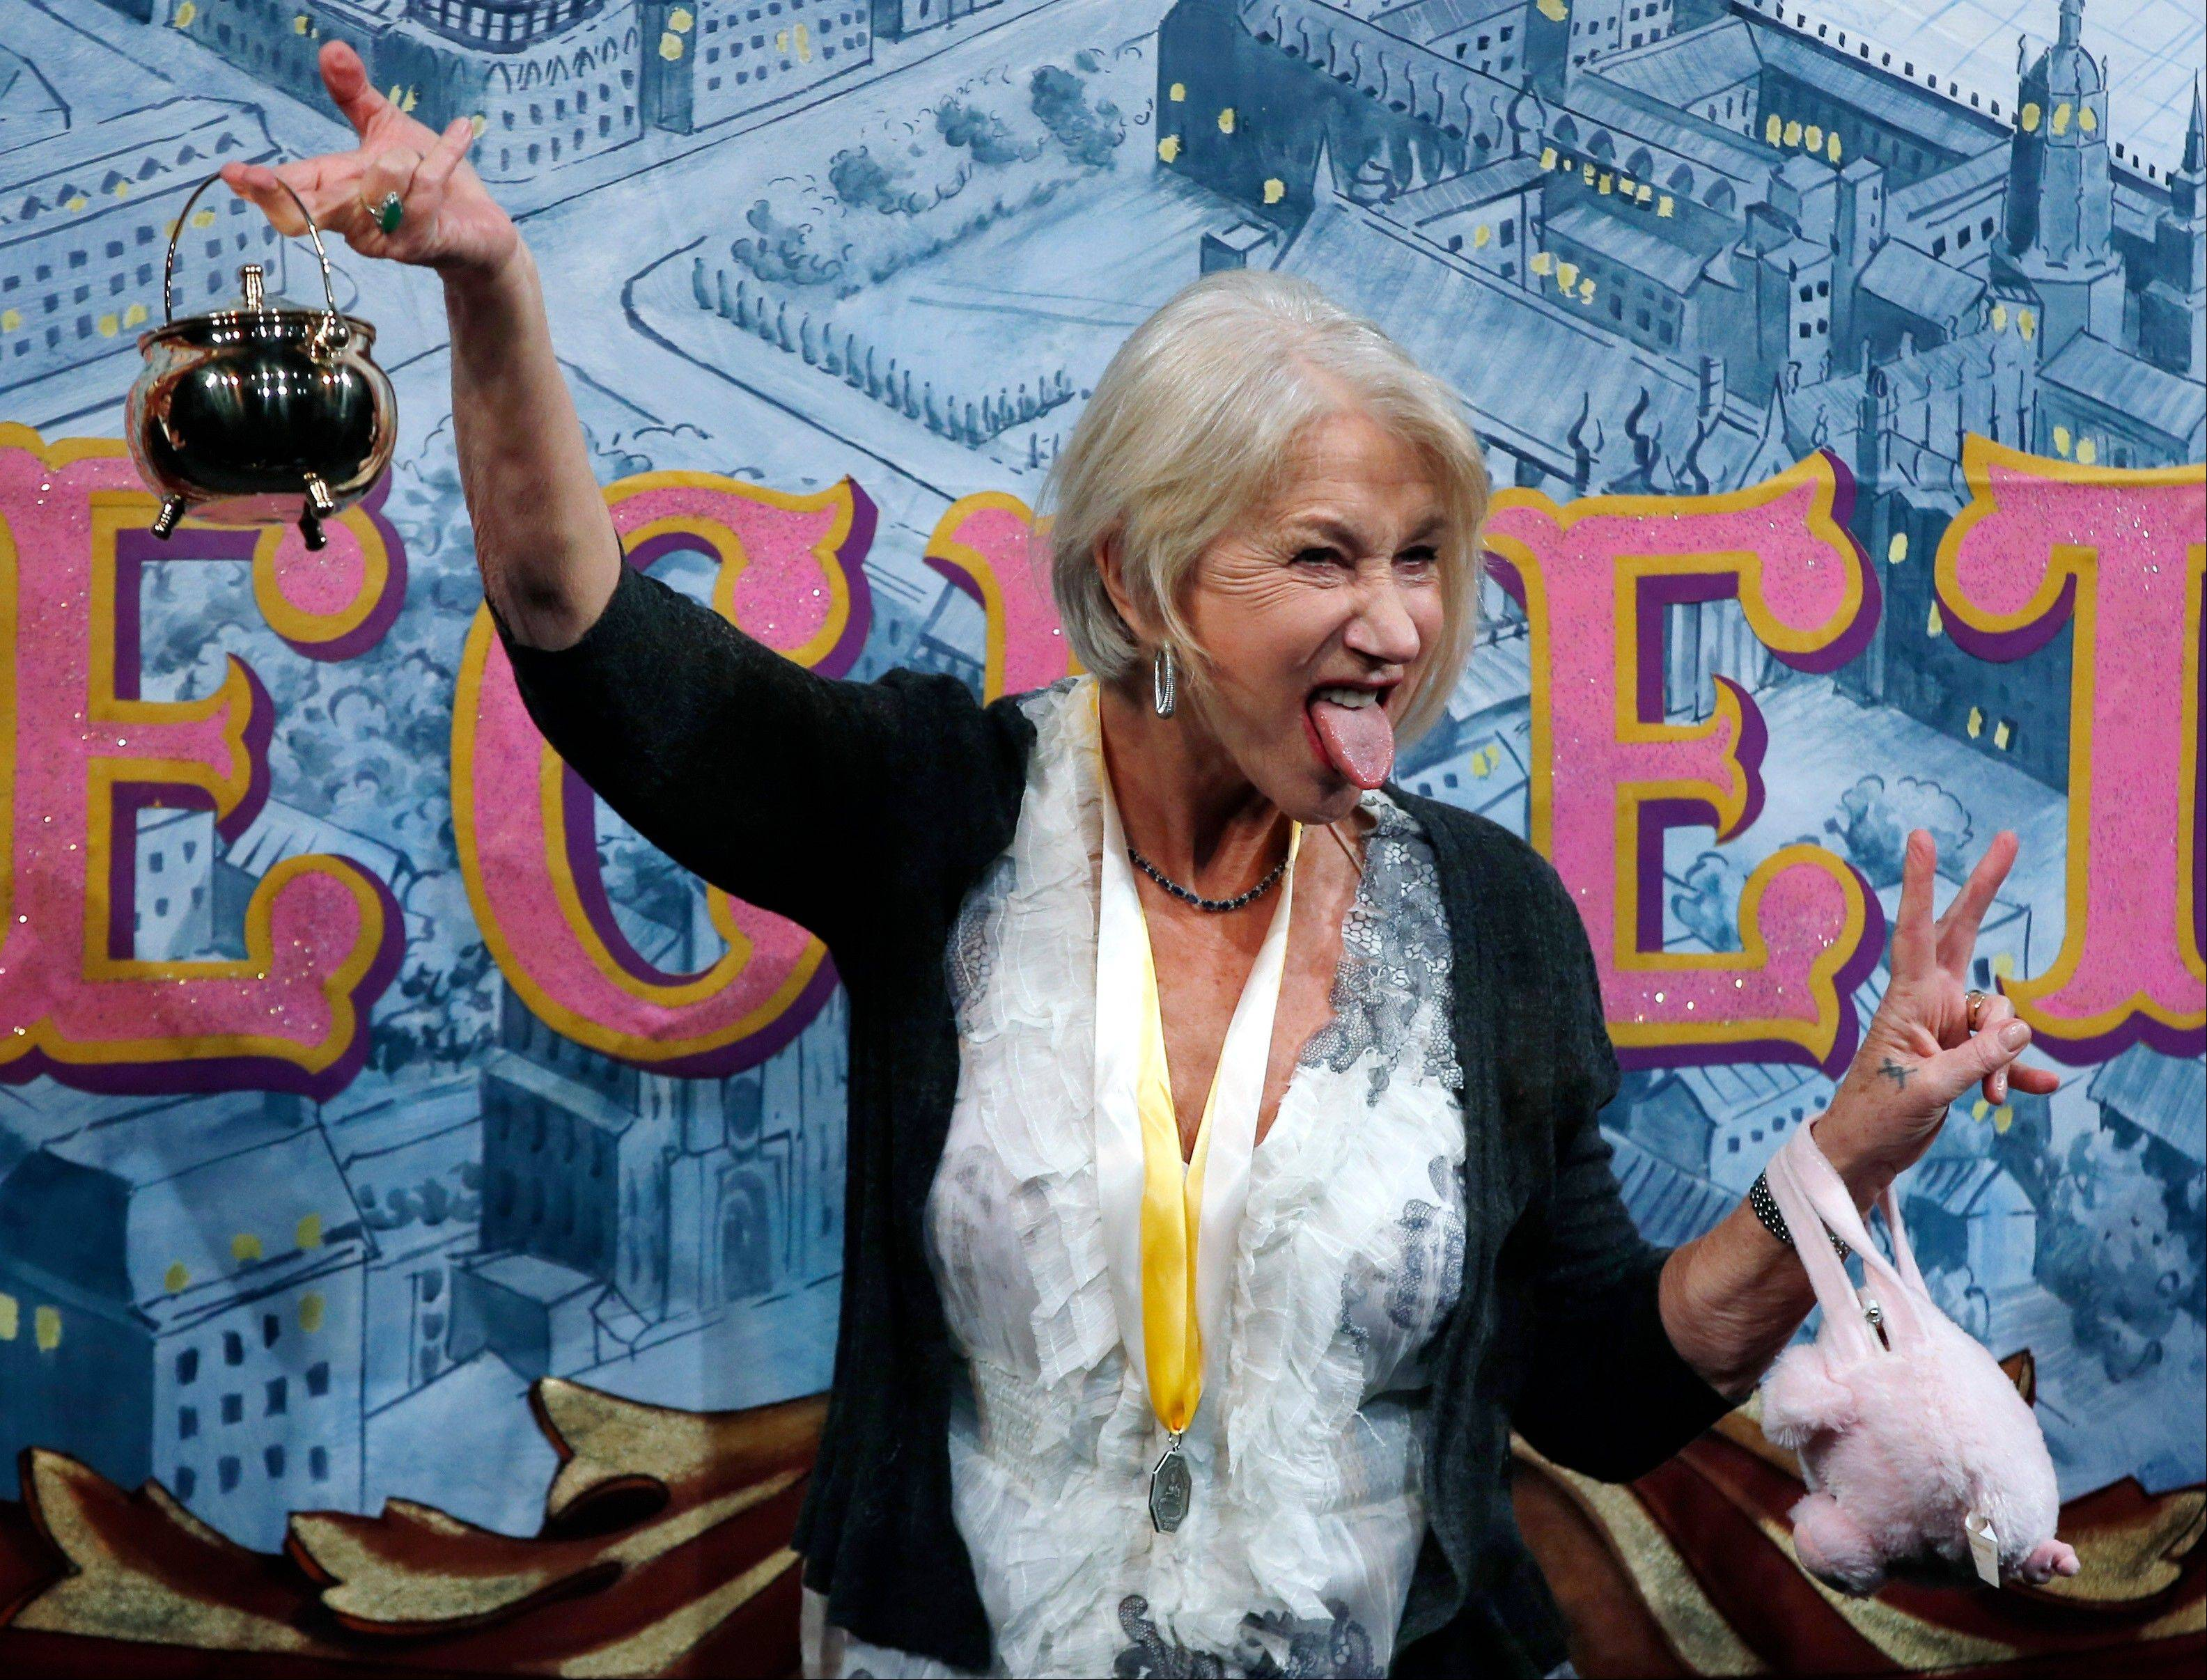 Actress Helen Mirren holds the Hasty Pudding Pot aloft and sticks her tongue out during her roast as woman of the year by Harvard University�s Hasty Pudding Theatricals in Cambridge, Mass., Thursday.